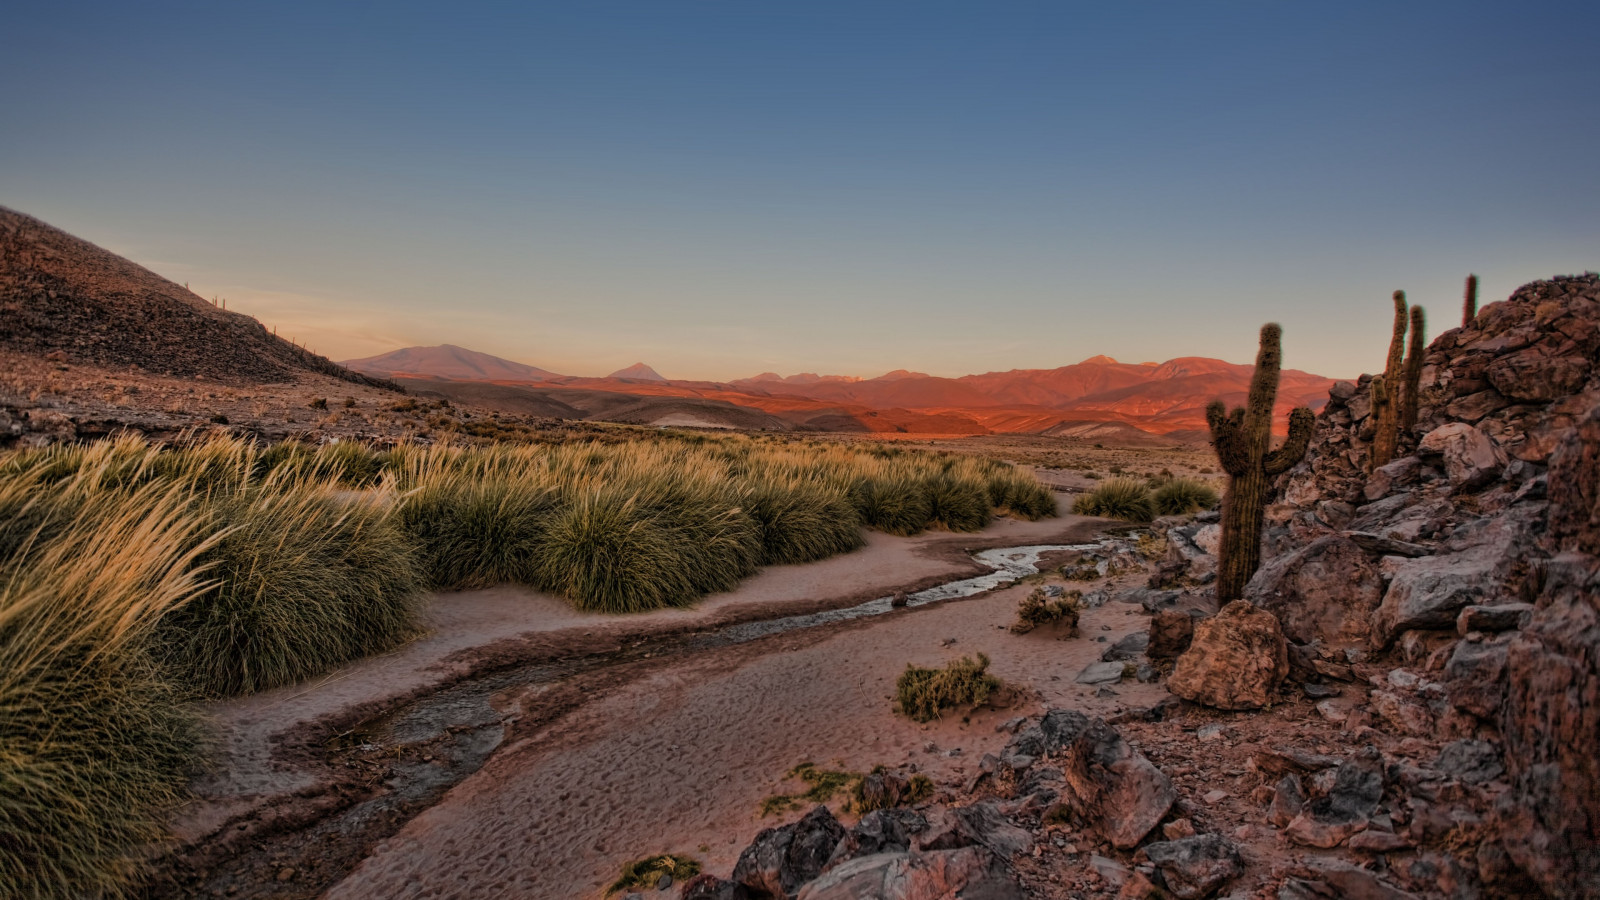 Atacama desert wallpaper 1600x900